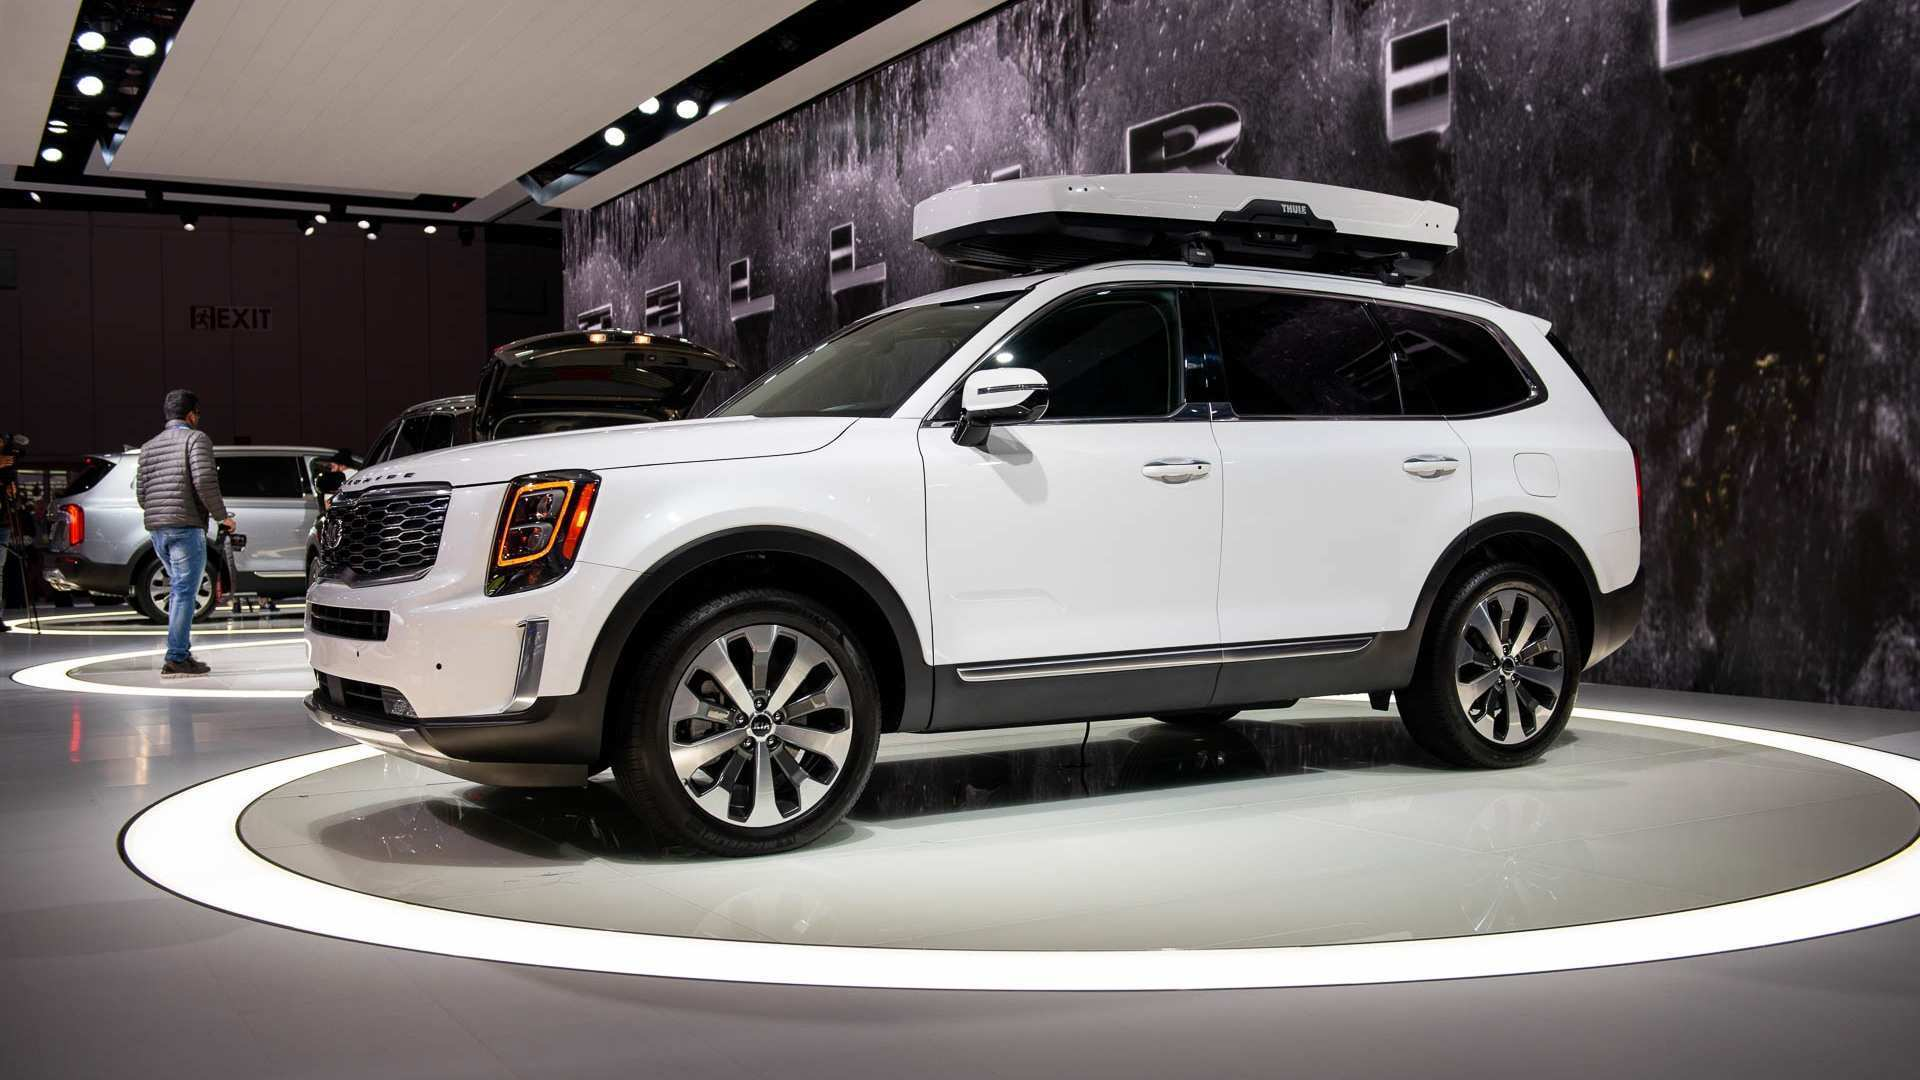 83 Gallery of Telluride Kia 2019 Exterior and Interior by Telluride Kia 2019